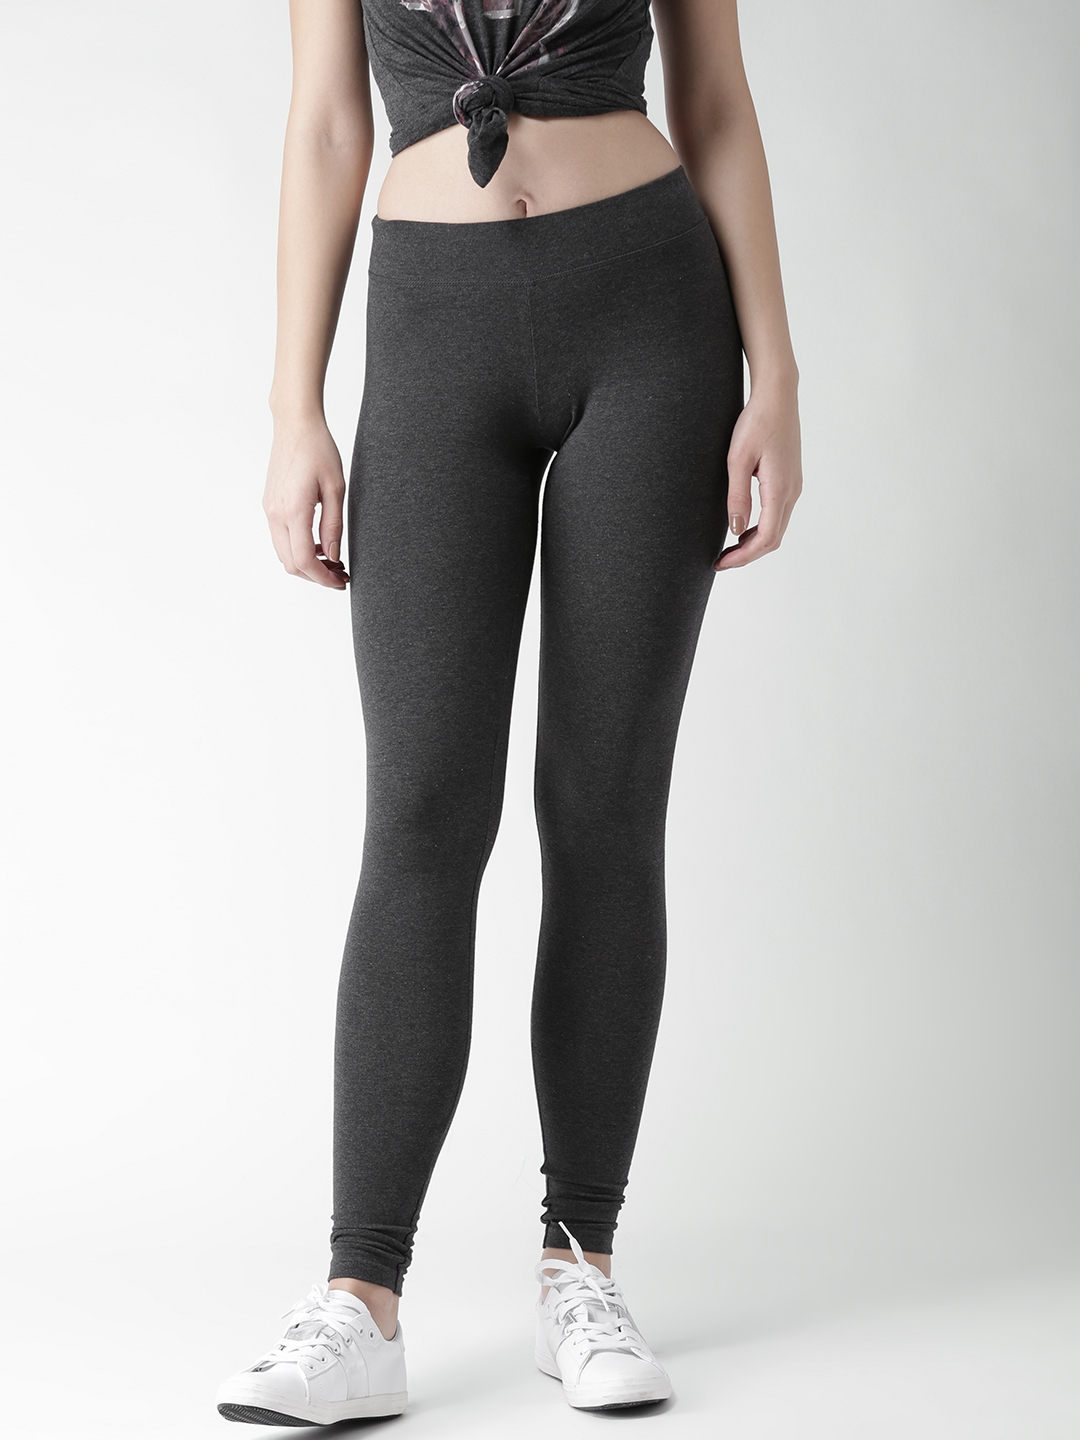 fcd285f362 Buy Aeropostale Charcoal Grey Leggings - Leggings for Women 1931701 ...